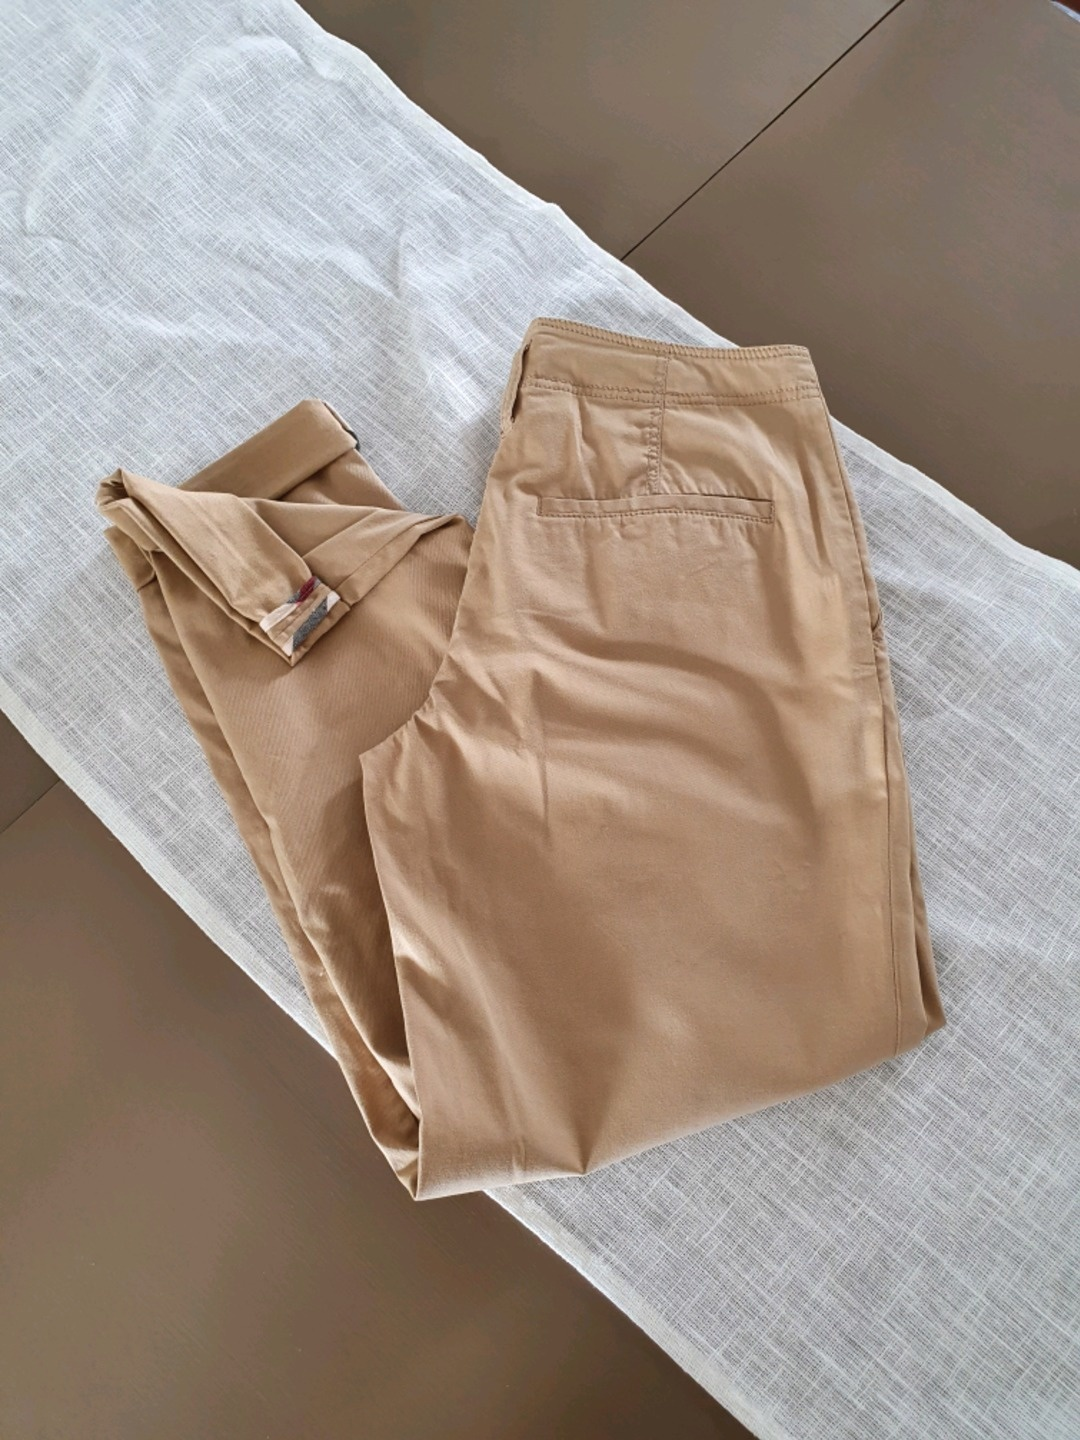 Women's trousers & jeans - BURBERRY photo 1